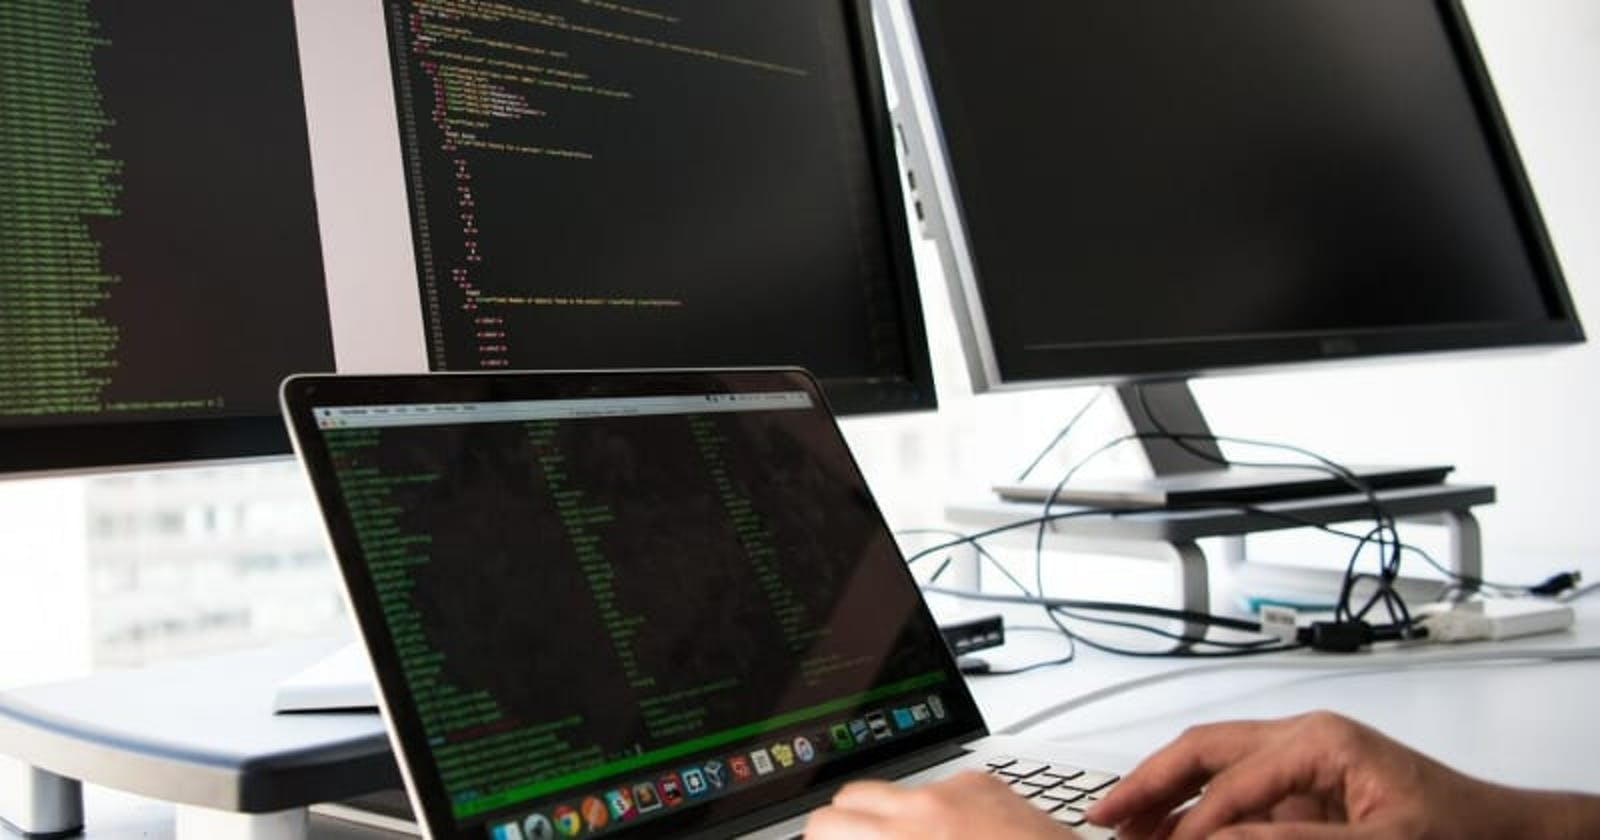 What is the difference between software developers, engineers, coders, and programmers